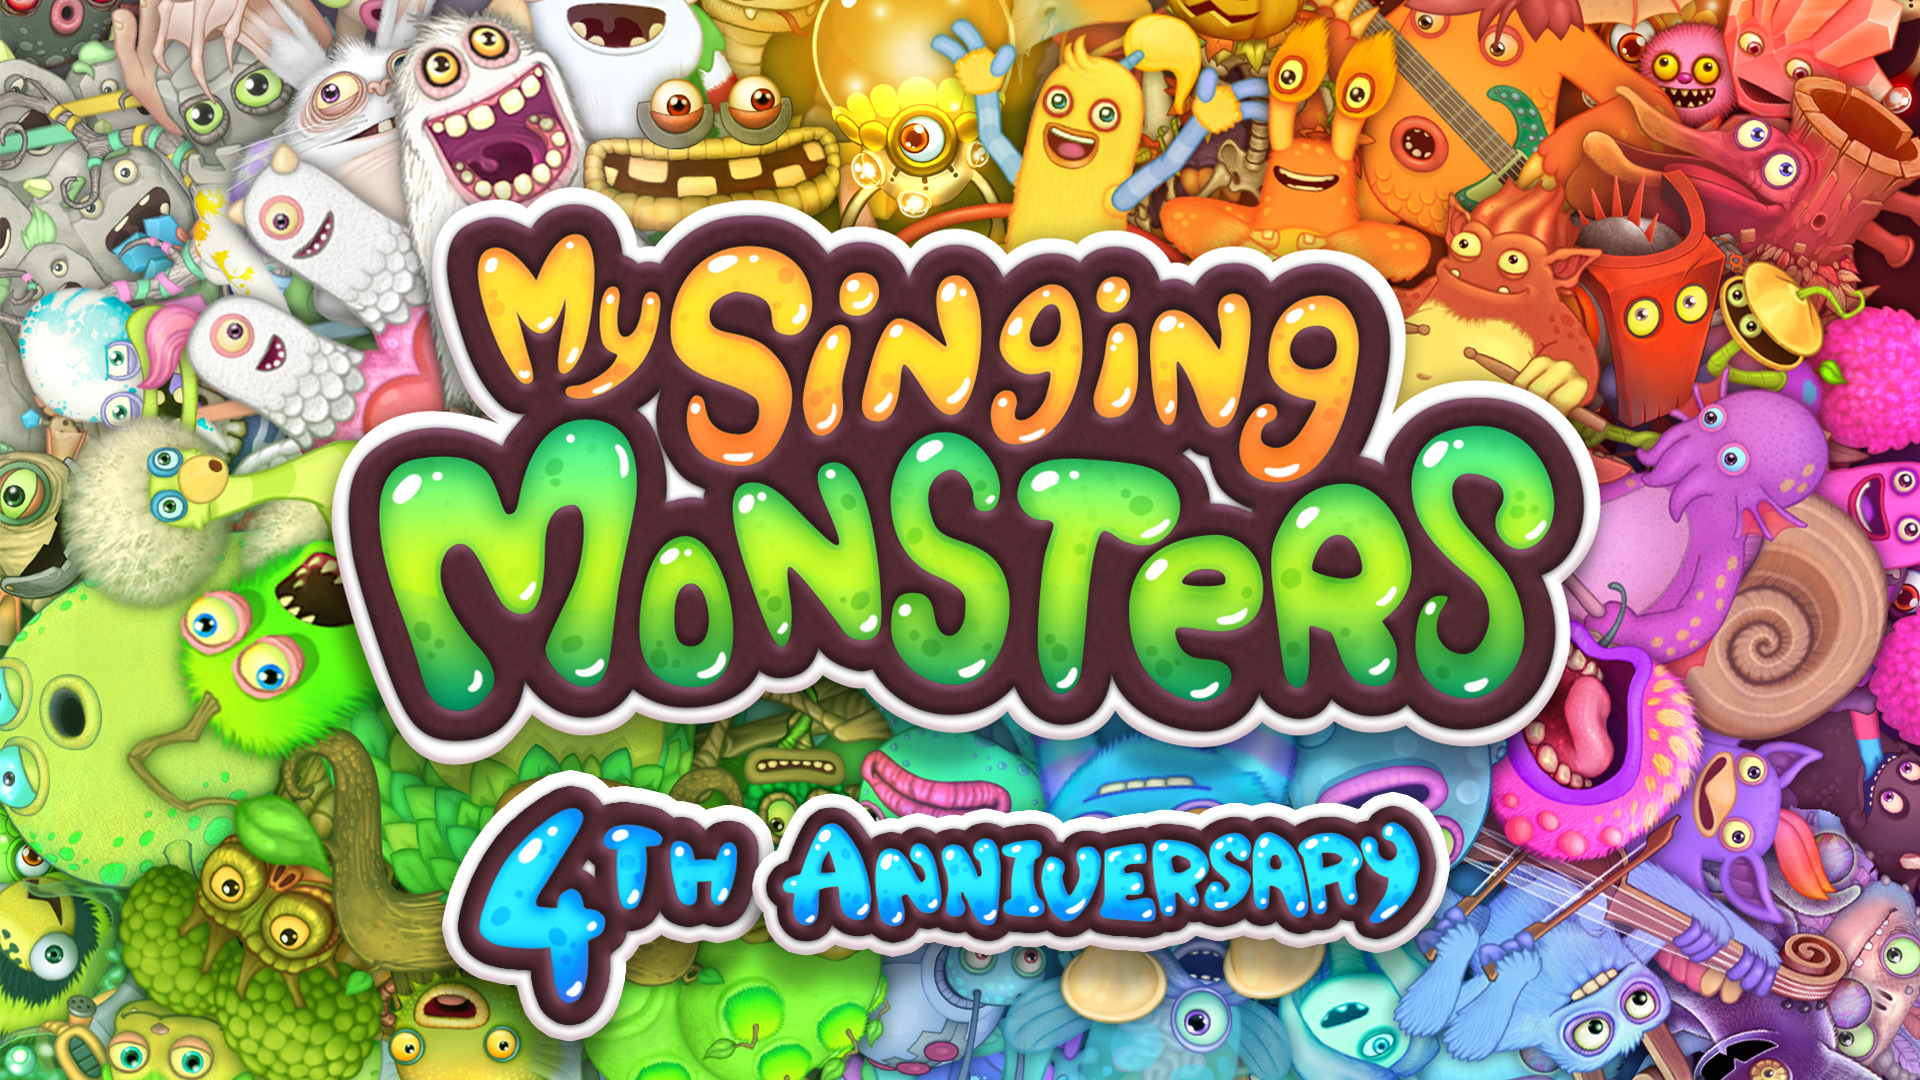 My Singing Monsters Fifth Anniversary Wallpaper - My Singing Monsters , HD Wallpaper & Backgrounds